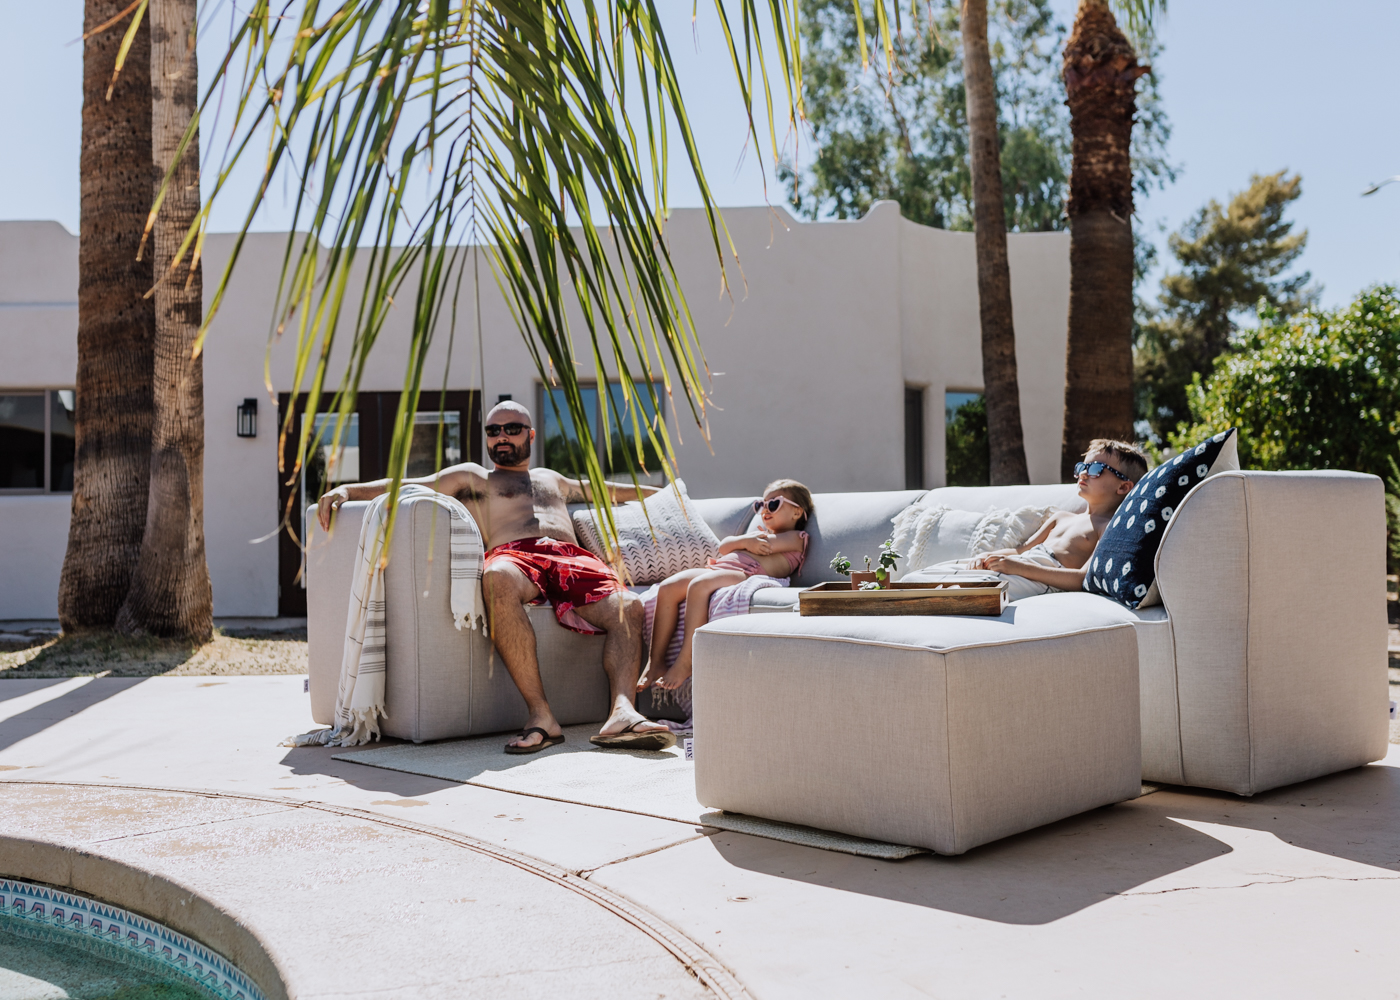 my favorite people enjoying our backyard in the late summer heat | thelovedesignedlife.com #summer #poolside #arizona